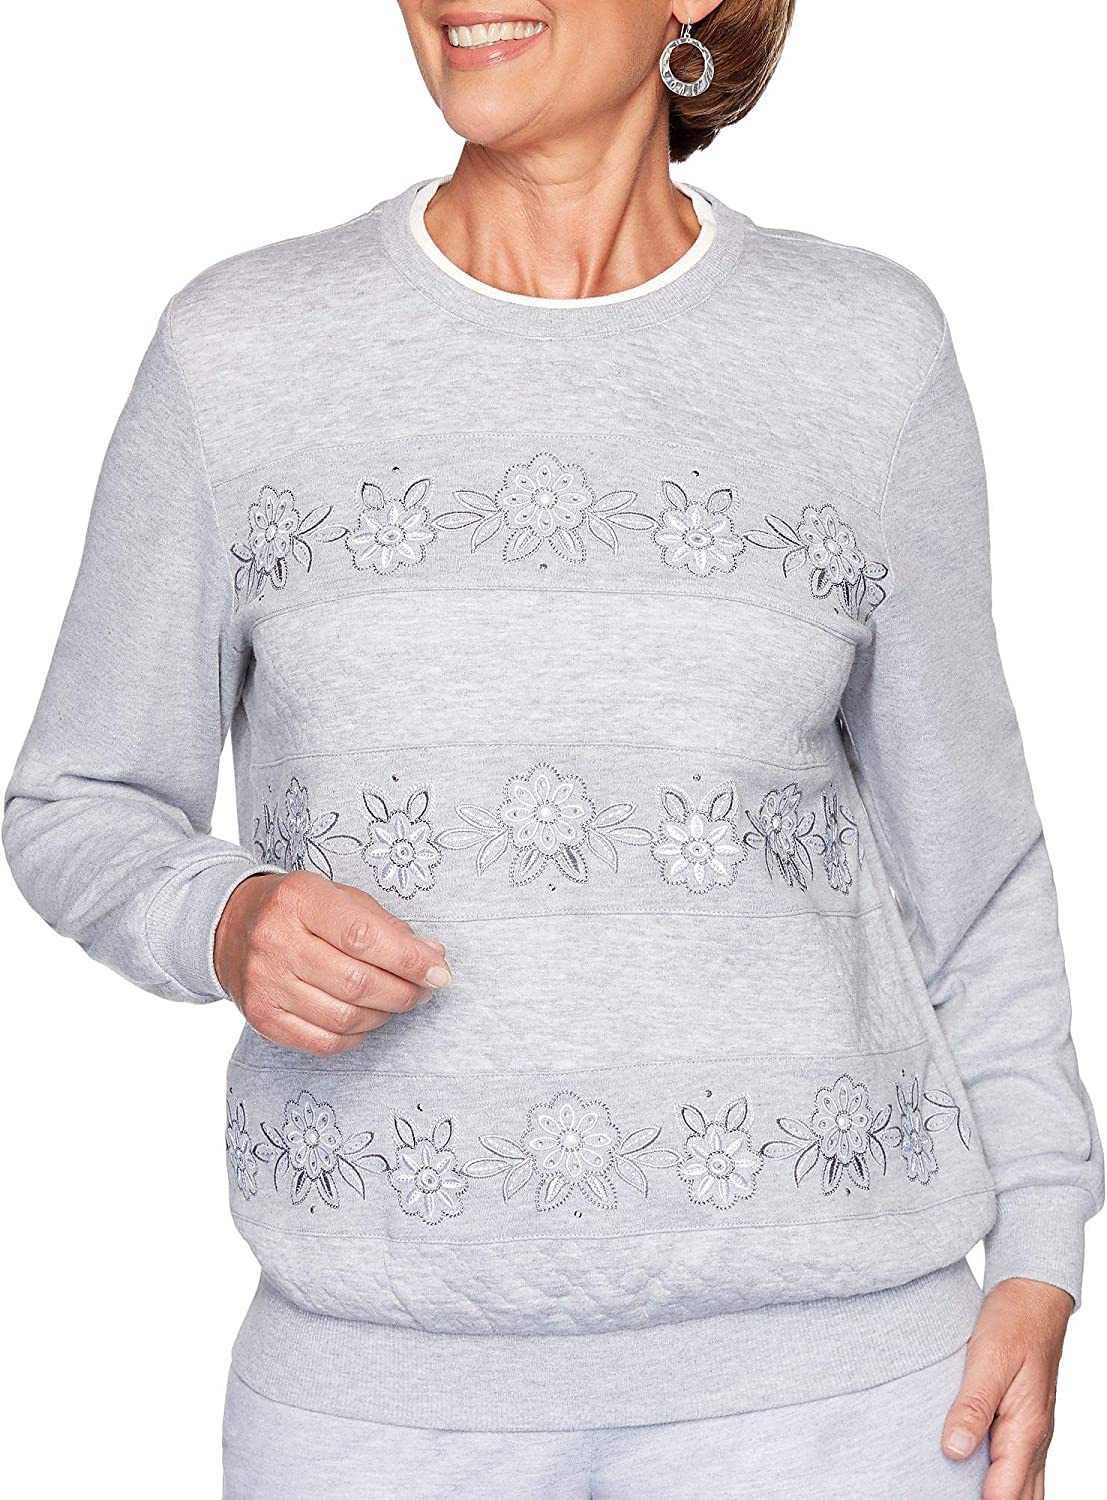 Alfred Dunner Womens All About Ease Quilted Floral Embroidered 1//4 Zip Sweatshirt